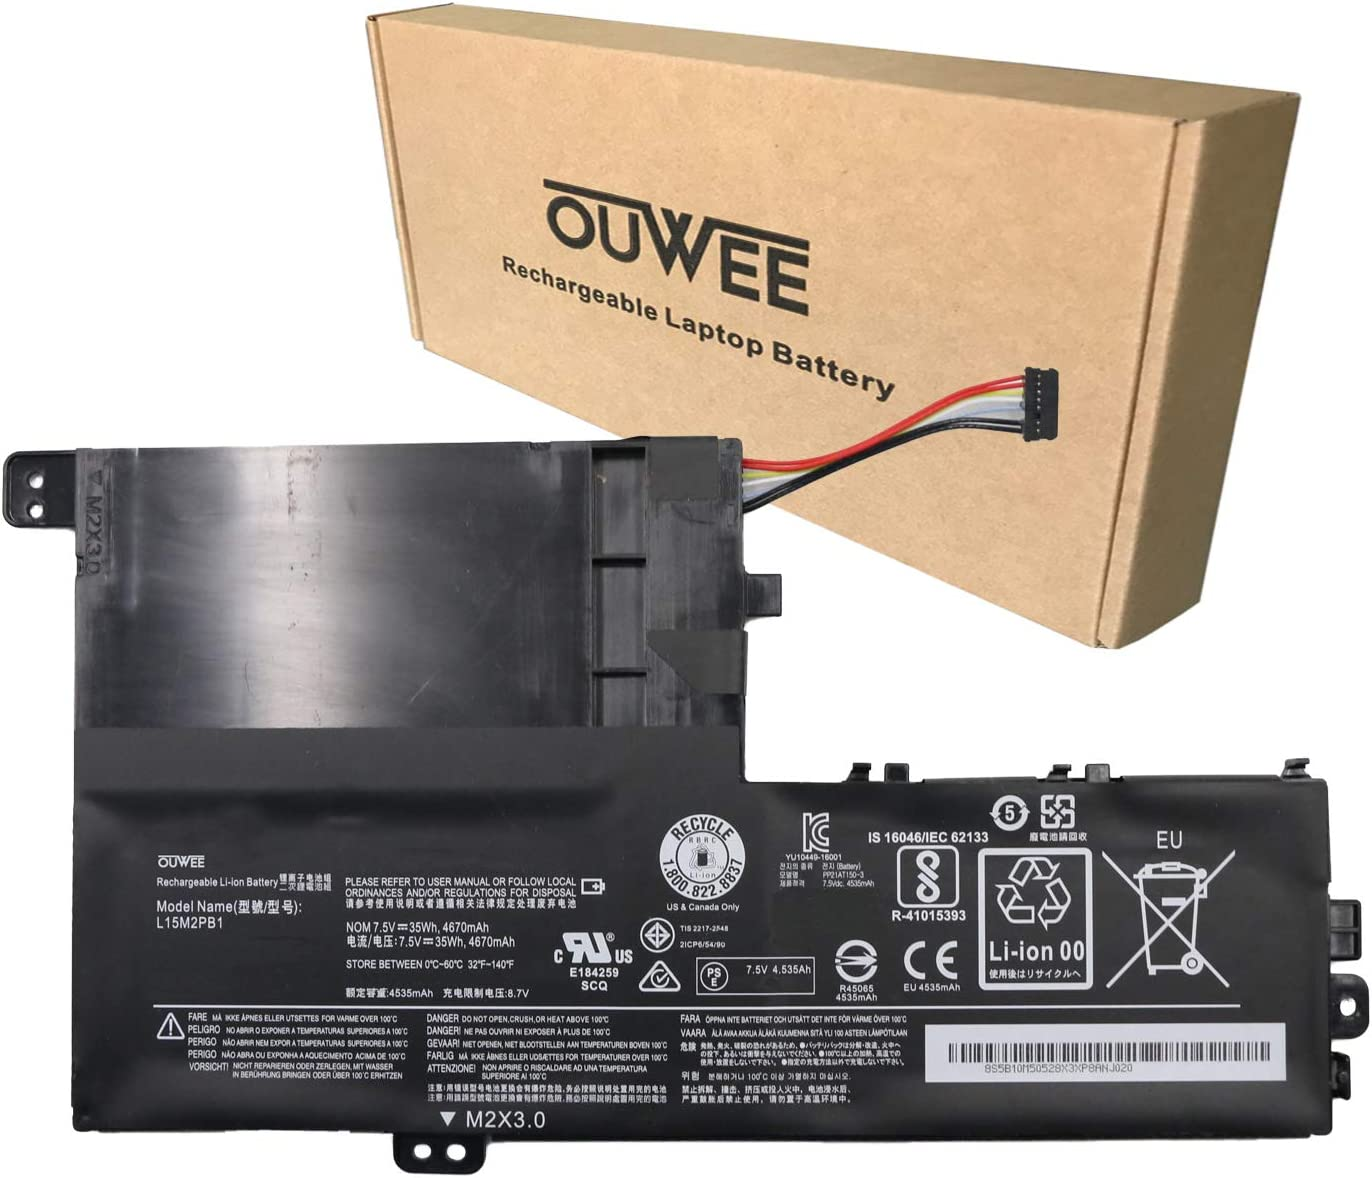 OUWEE L15M2PB1 Laptop Battery Compatible With Lenovo Flex 5 1470 1570 IdeaPad 320S-14IKB 320S-15ABR 320S-15AST 320S-15IKB 320S-15ISK 520S-14IKB Yoga 520-14IKB Serie L15L2PB1 L15C2PB1 L15M3PB0(Shape-A)